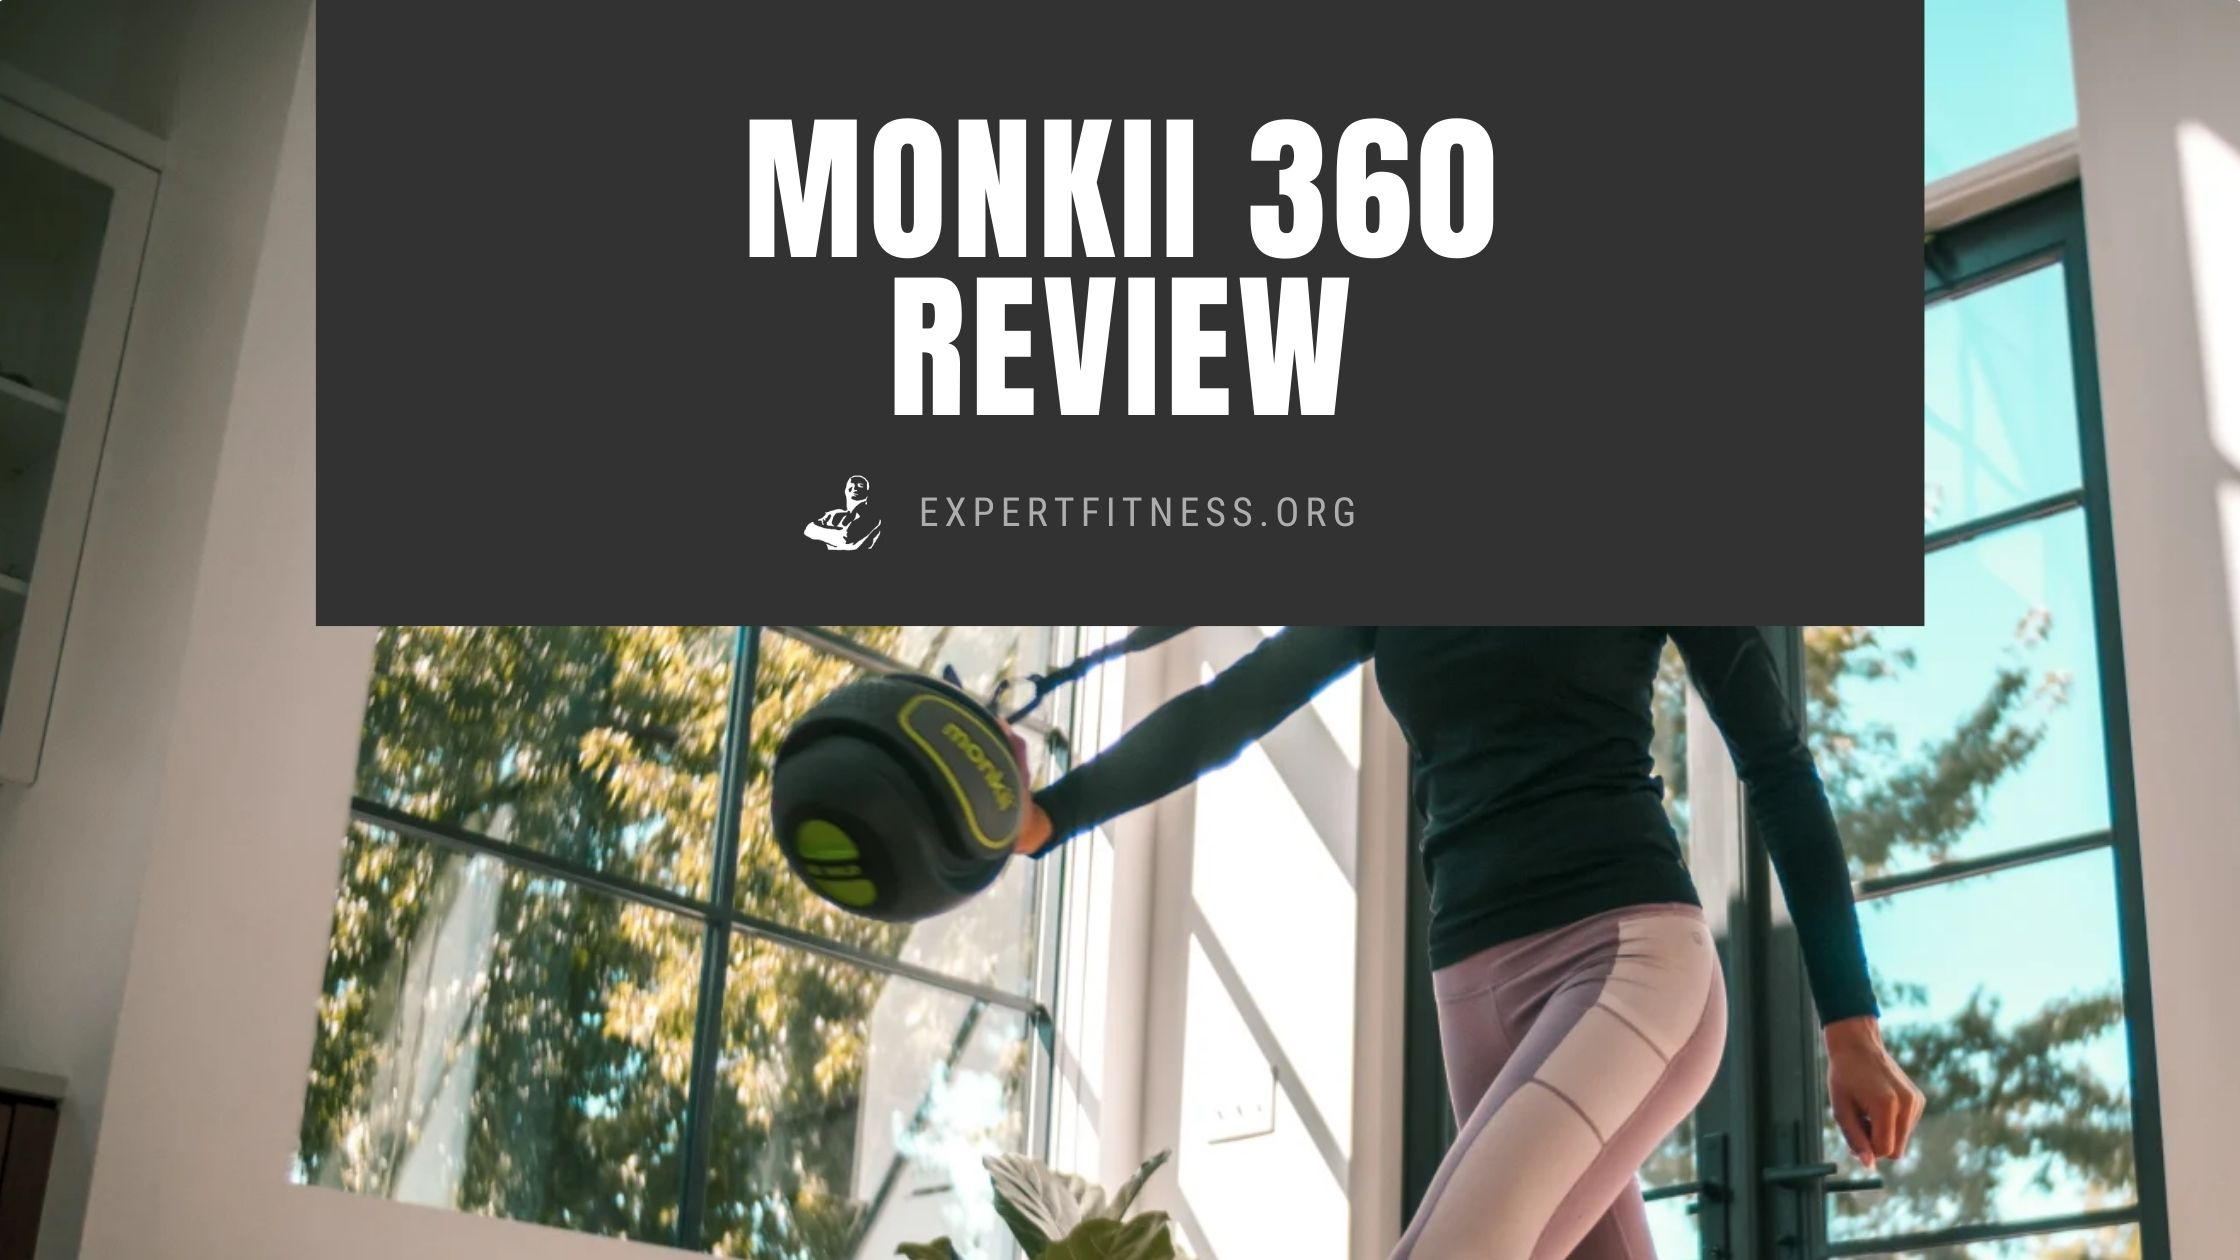 monkii 360 review